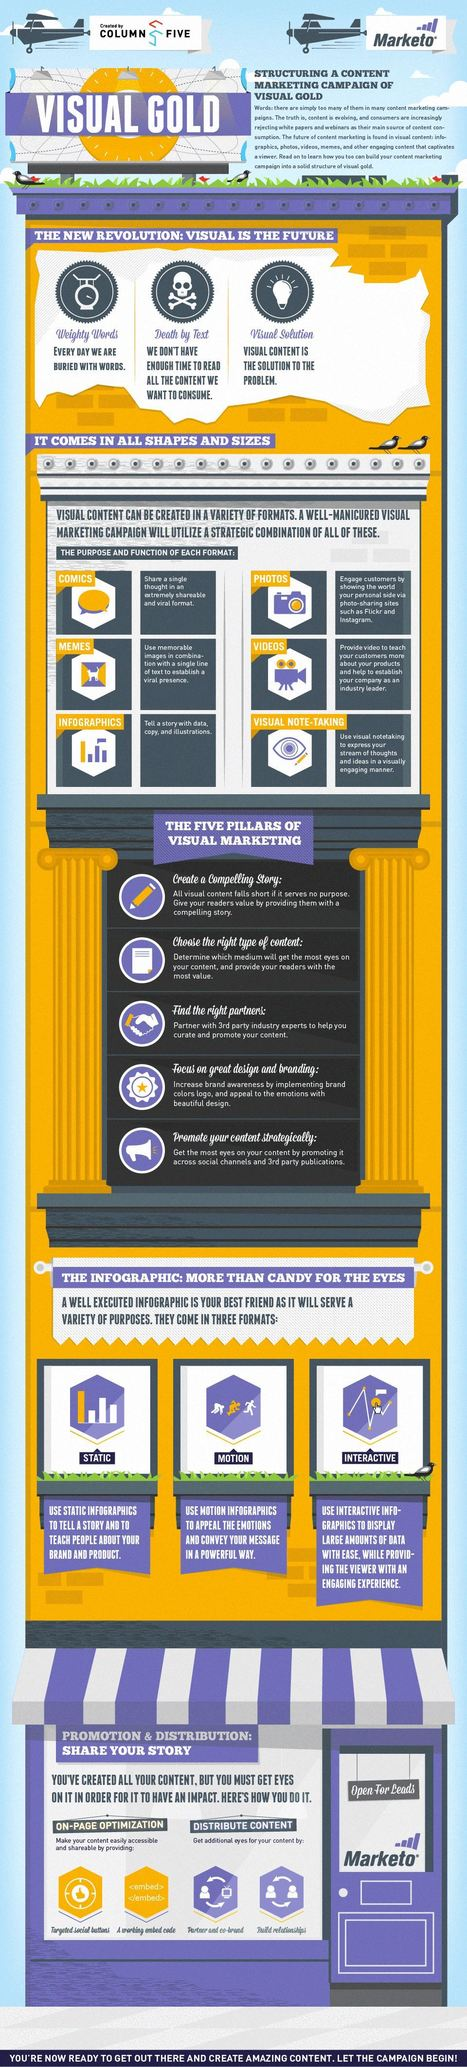 Visual Gold! The New Revolution of Content Marketing [Infographic] - Business 2 Community | marketing content | Scoop.it